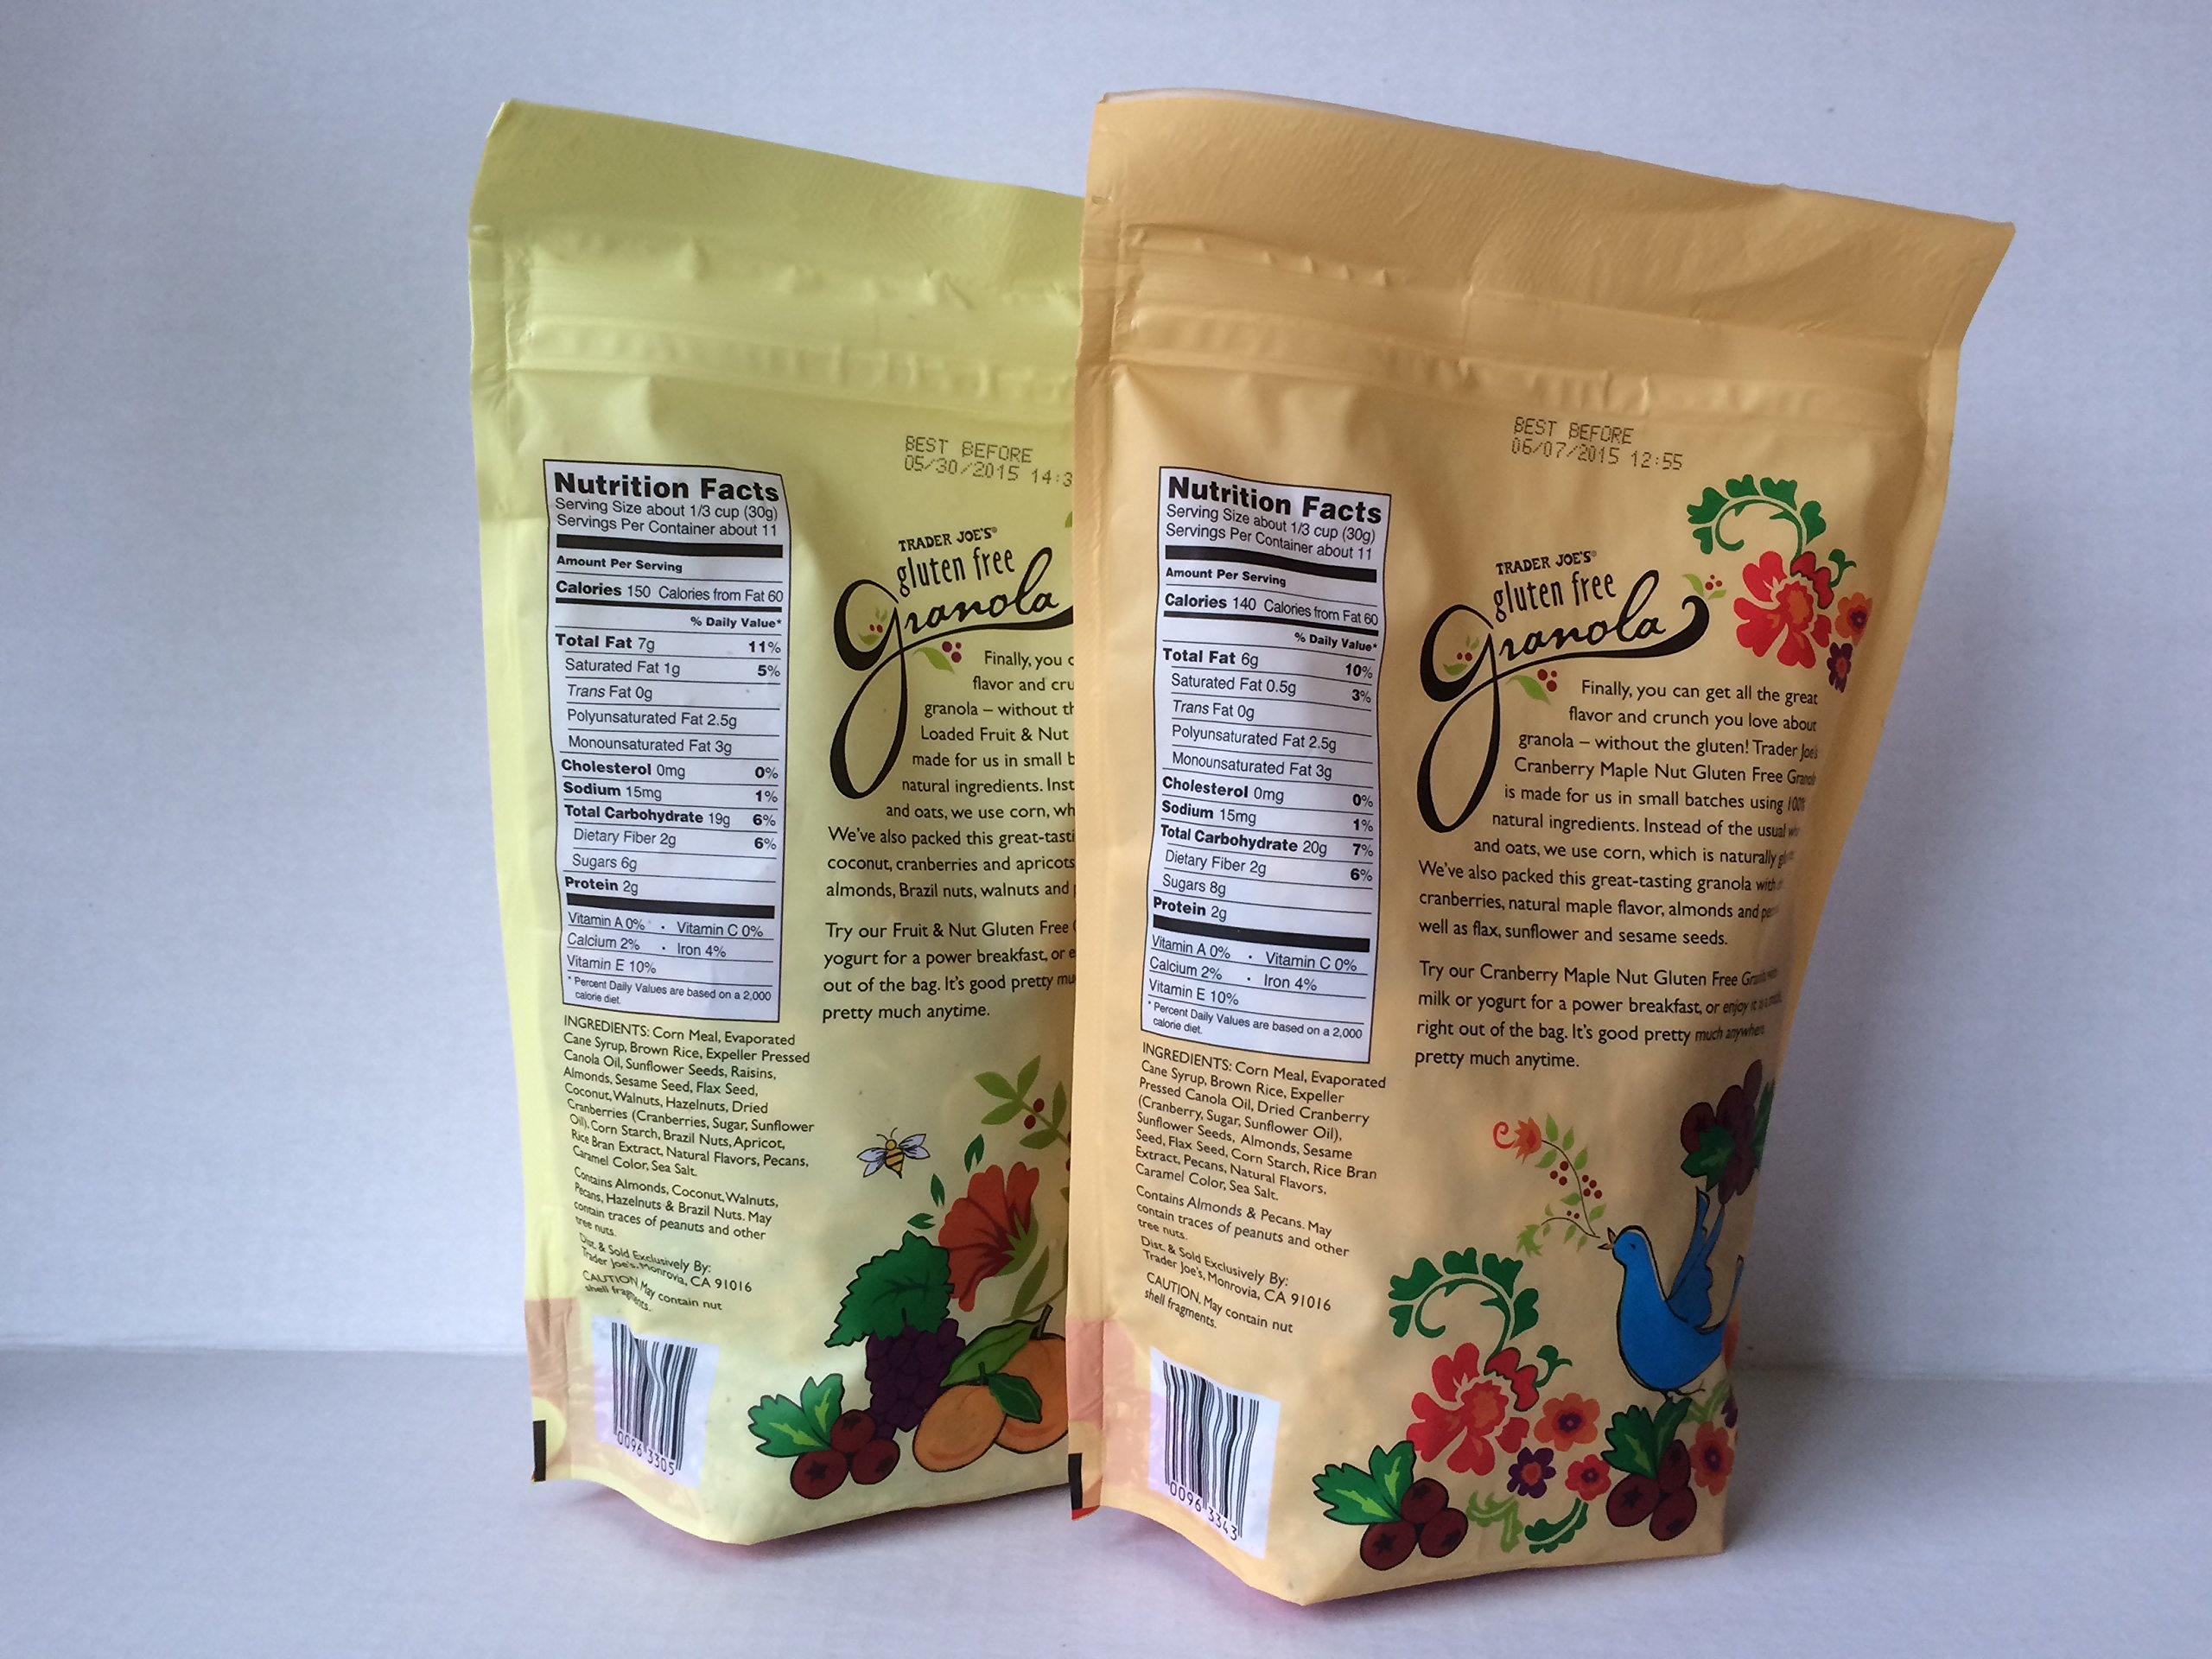 Trader Joes Loaded Fruit and Nut Granola & Trader Joes Gluten Free Cranberry Maple Nut Granola Bundle (2 Items)